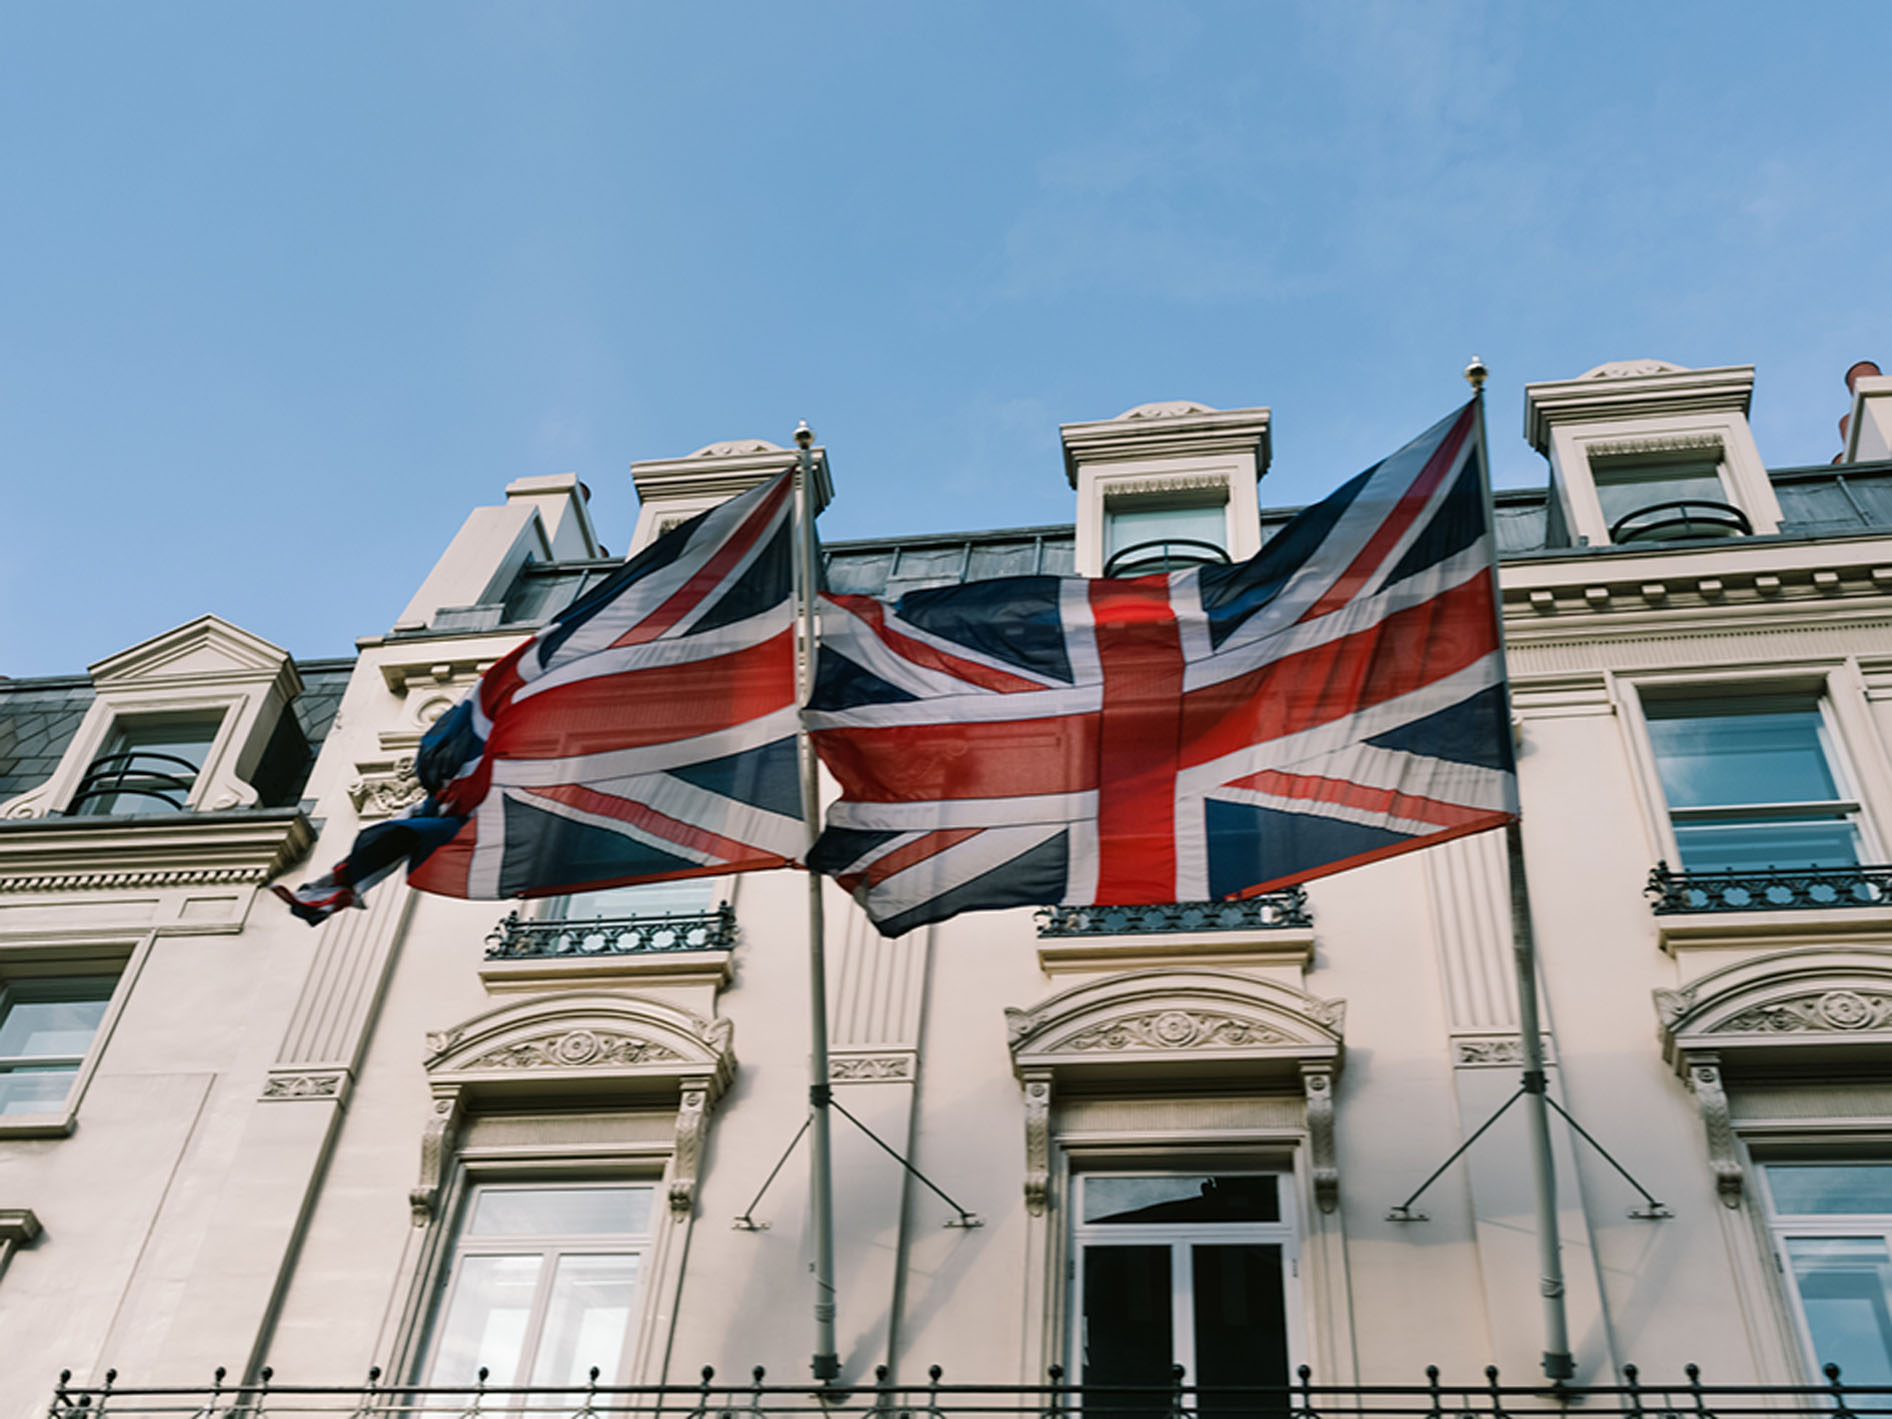 Housing complex in London flying the Union Jack flag